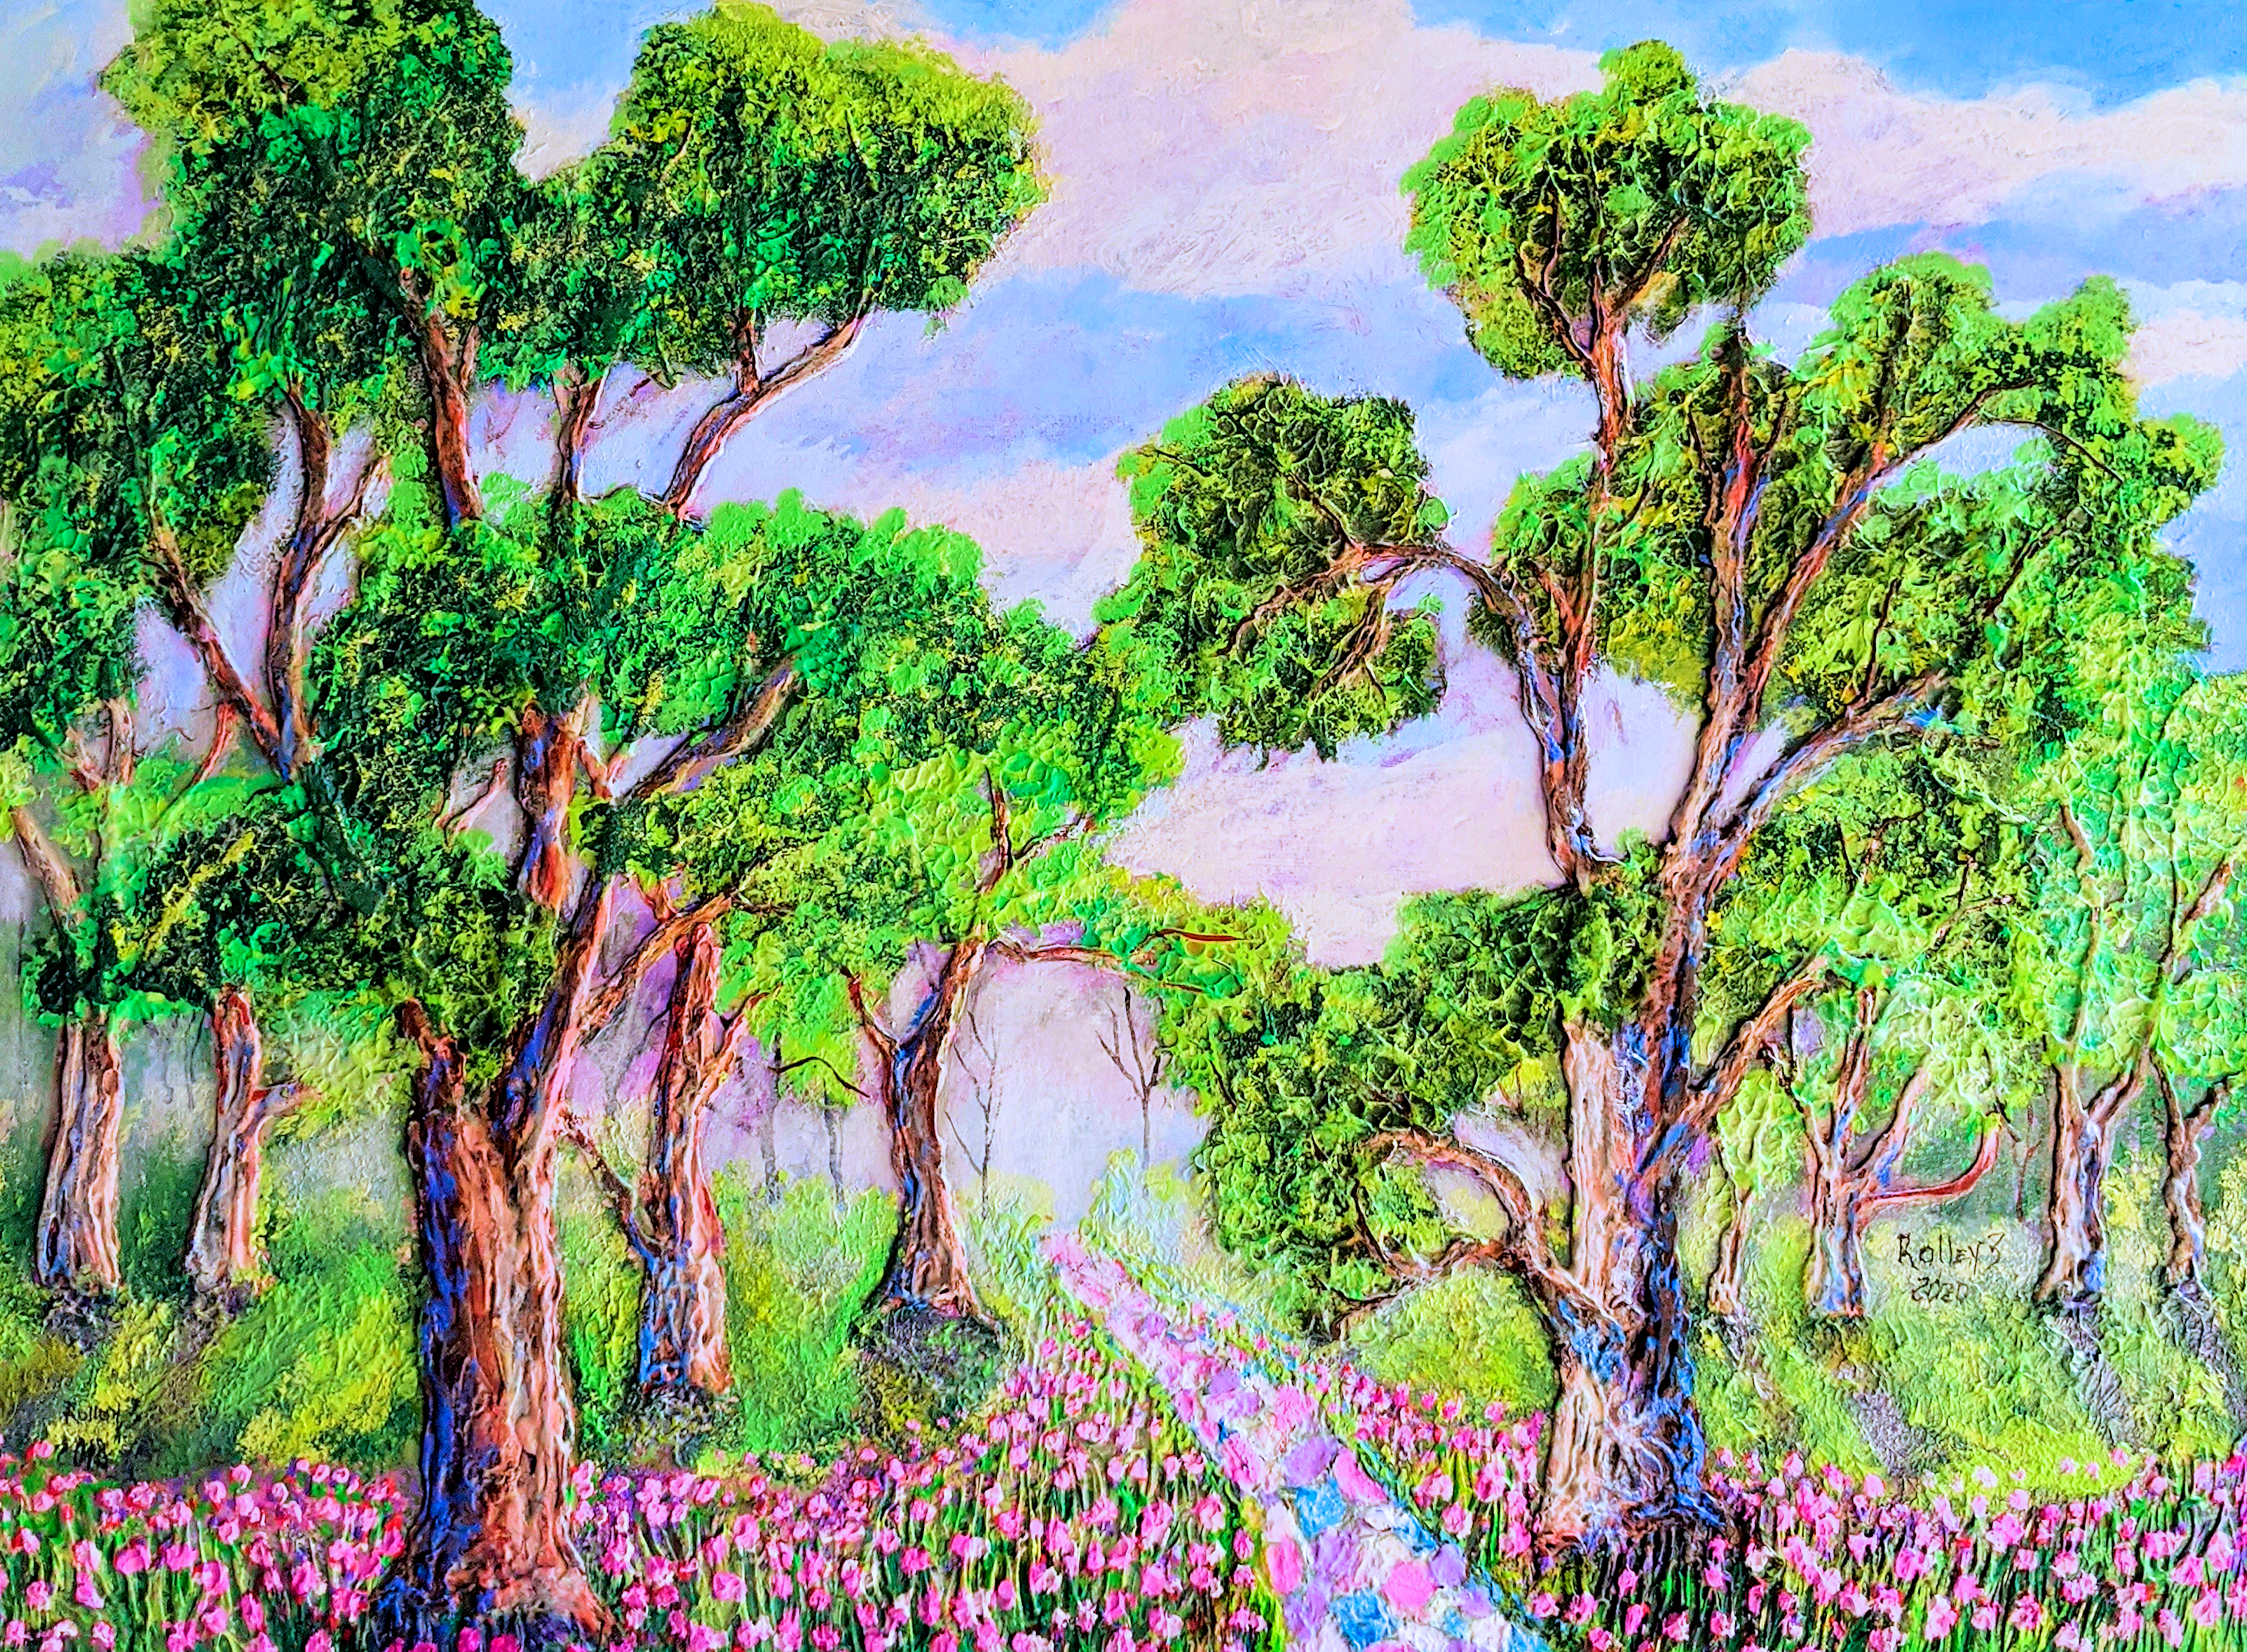 "SOFT WALK    30X40""    $1100   HIGHLIGHTED WITH GLOW IN DARK LUMINESCENT PAINT"